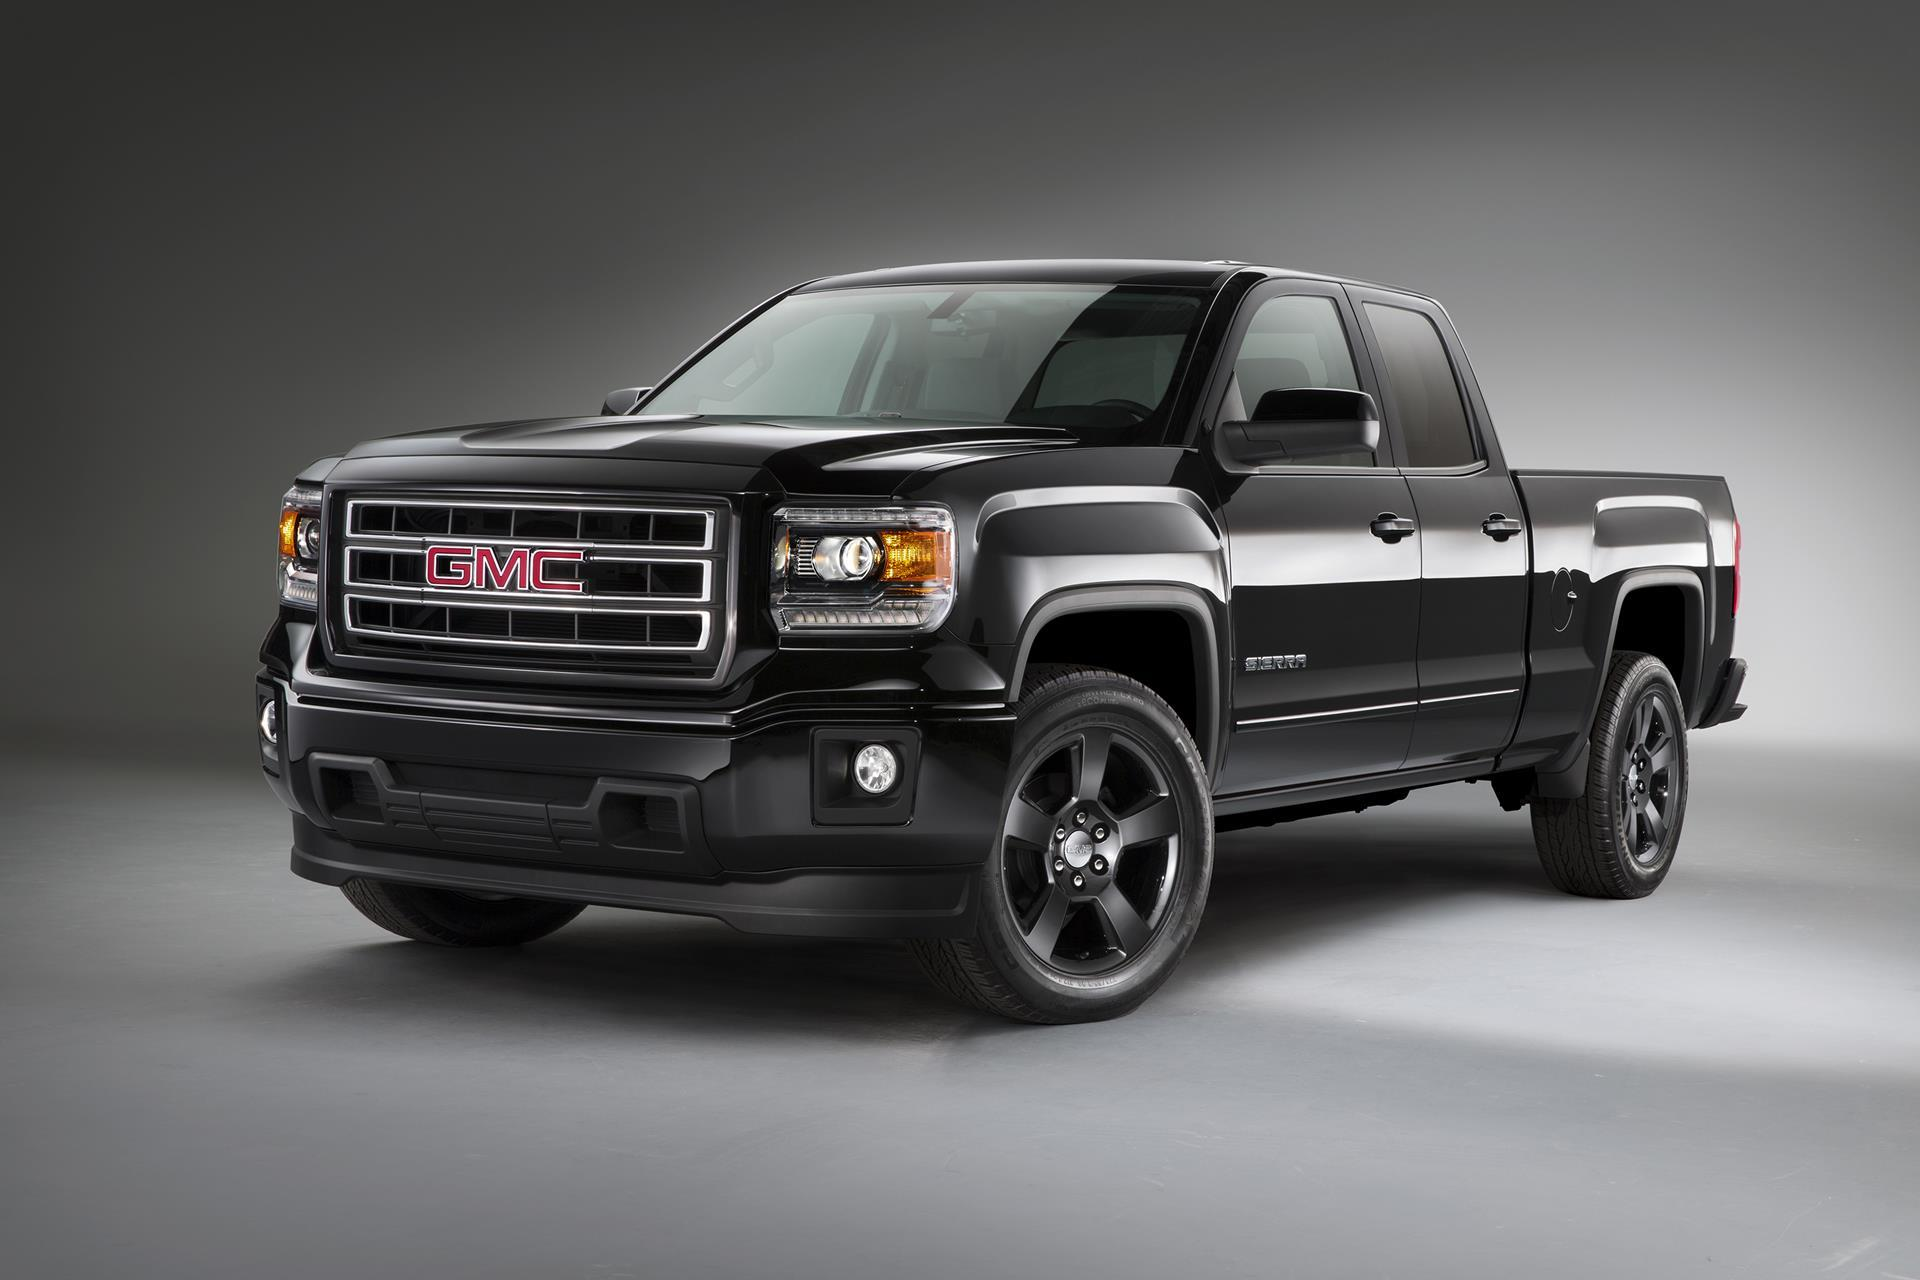 2015 GMC Sierra Elevation Edition News and Information